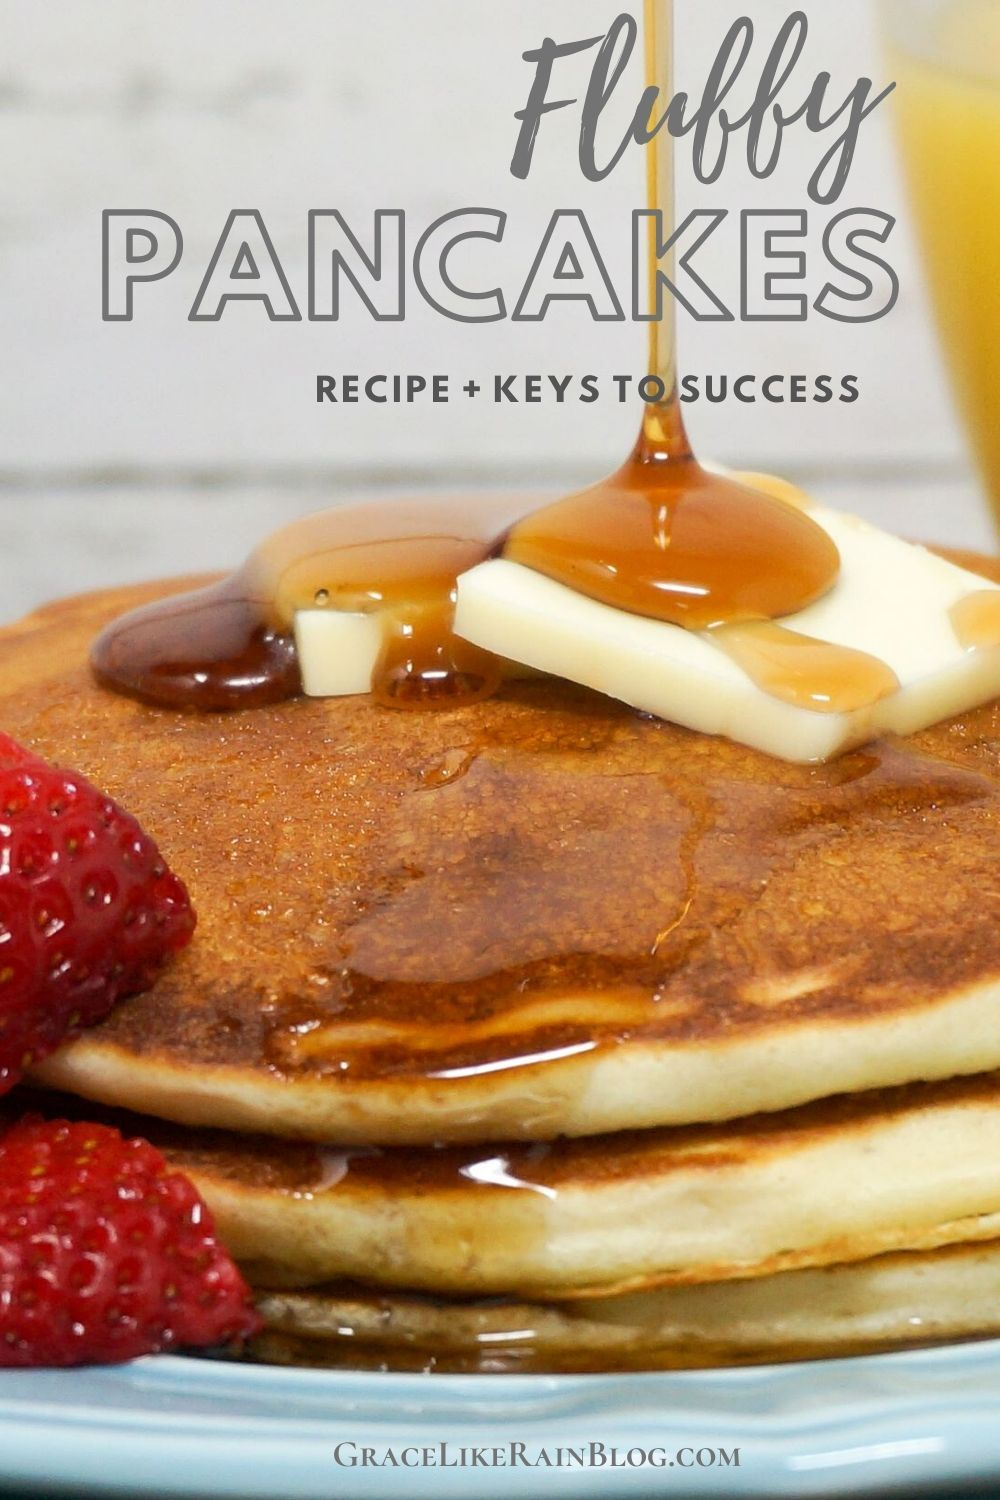 Fluffy Pancakes Recipe In 2020 Recipes Fluffy Pancakes Breakfast Recipes Easy